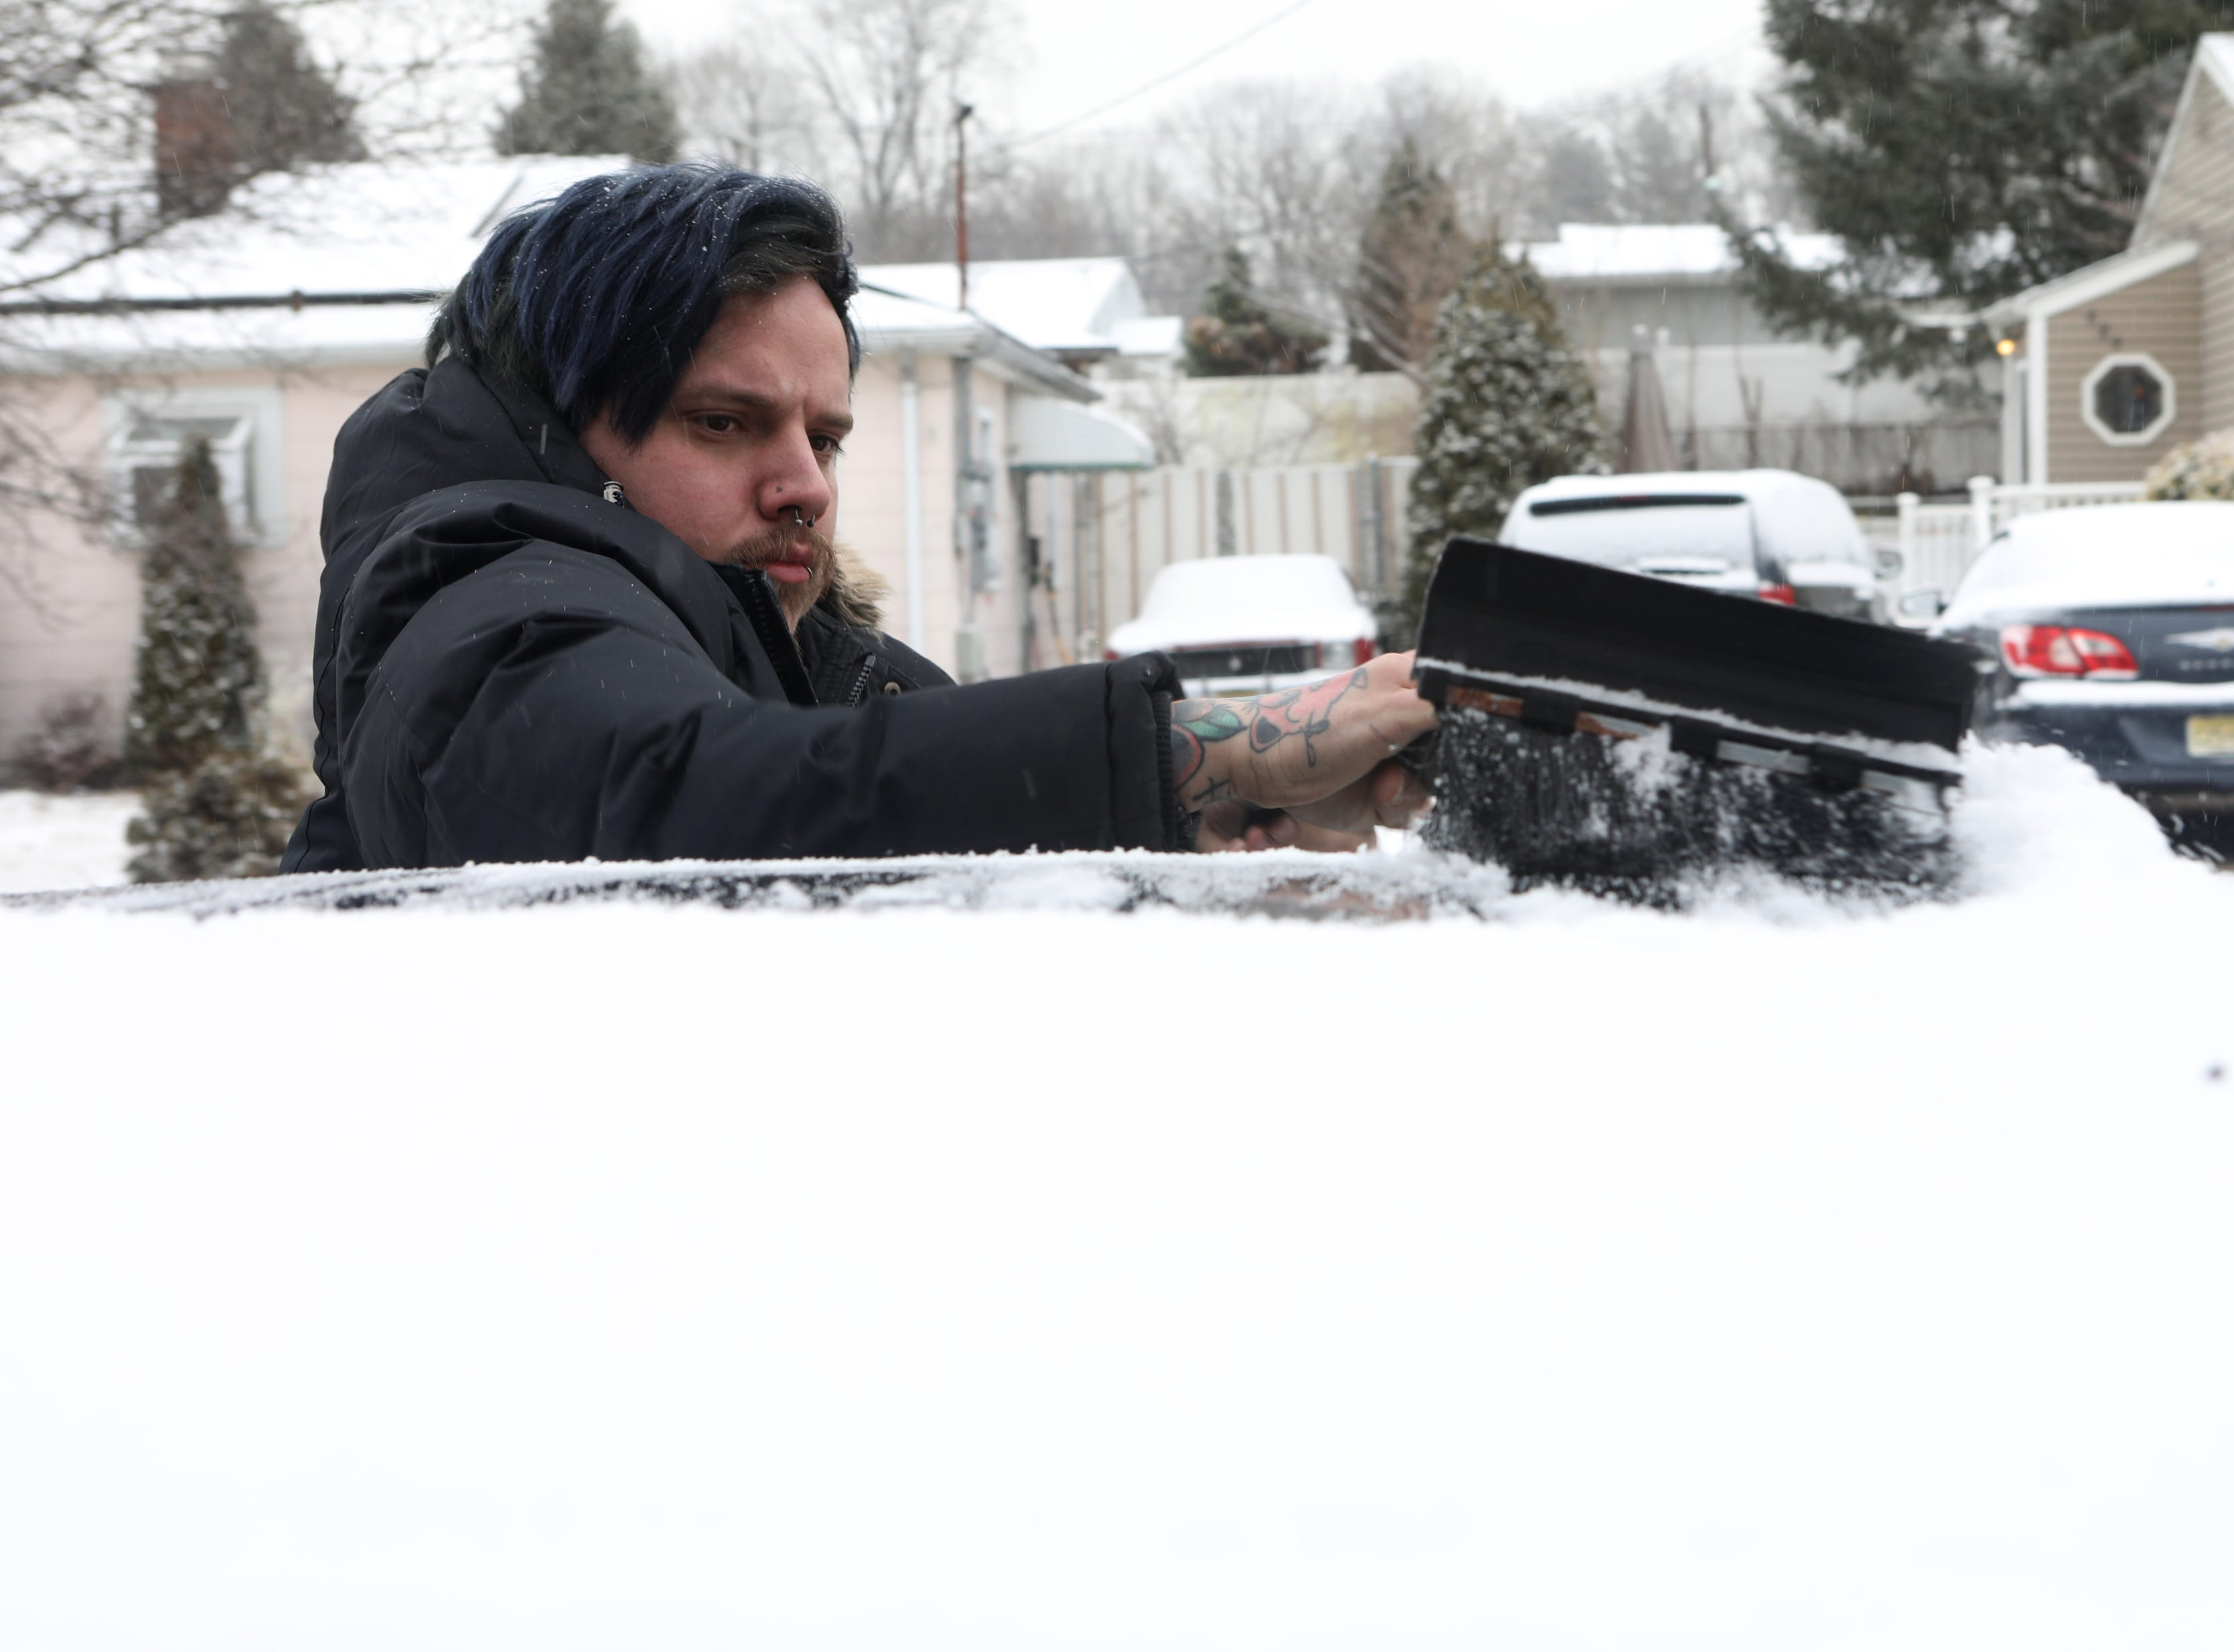 Joseph Rolan, 28, of Elmwood Park, removes snow from his car, Wednesday, February 20, 2019.